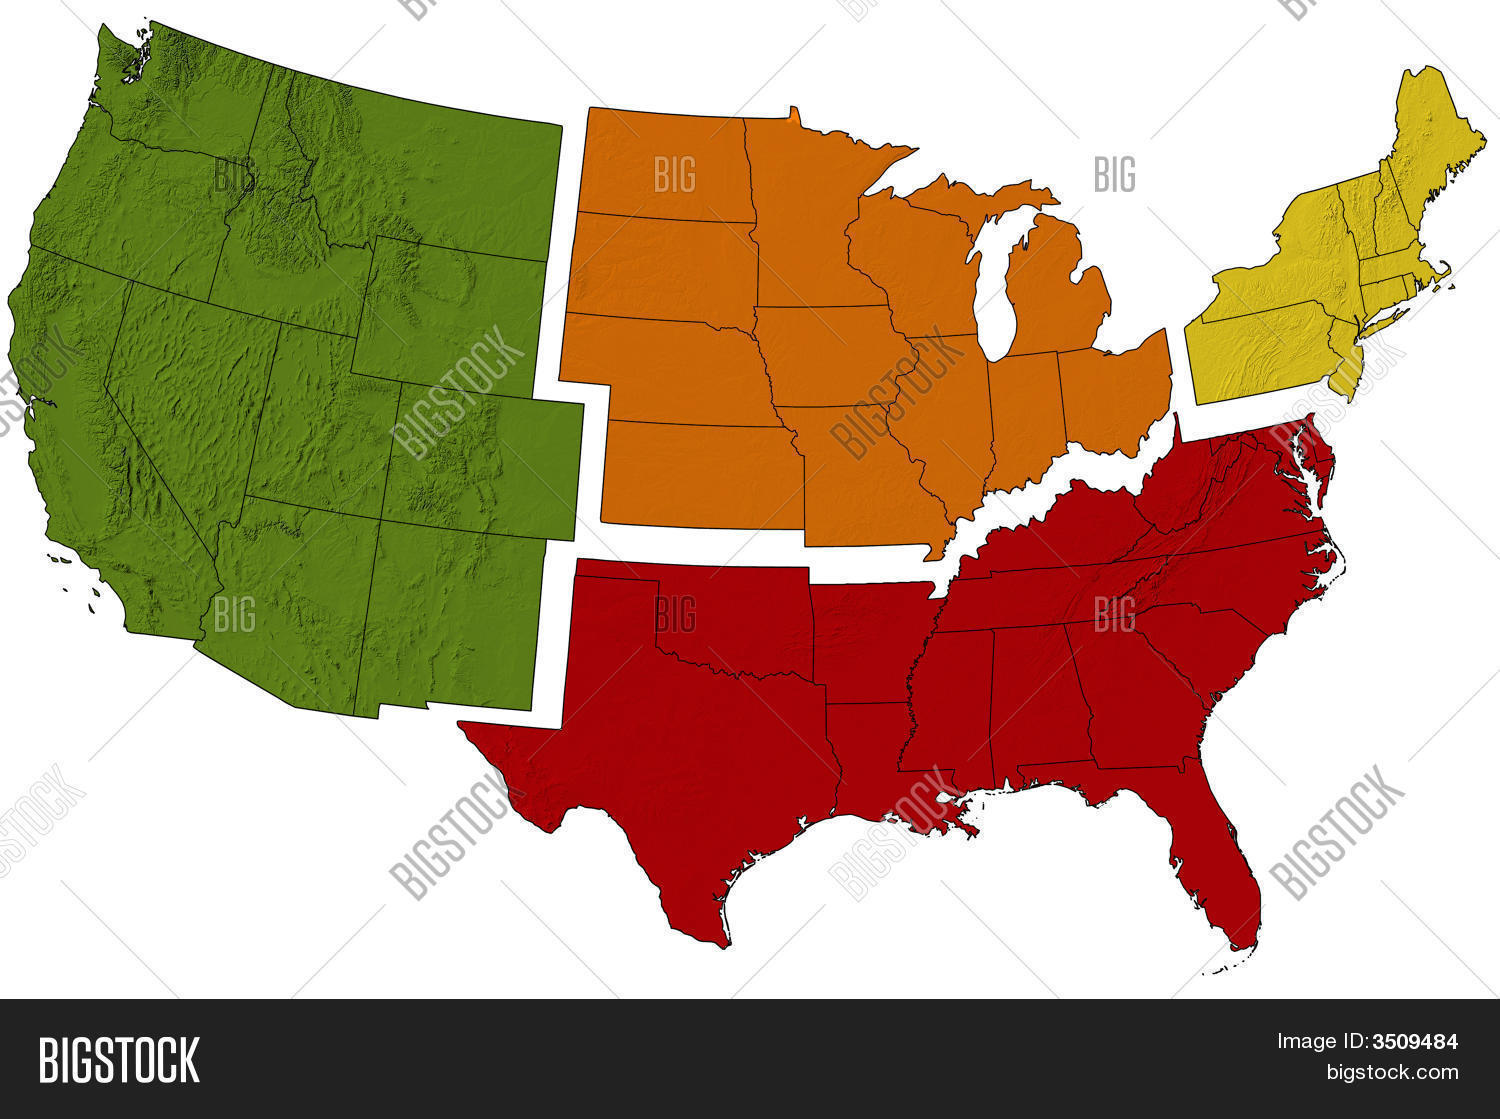 Map United States Image & Photo (Free Trial) | Bigstock